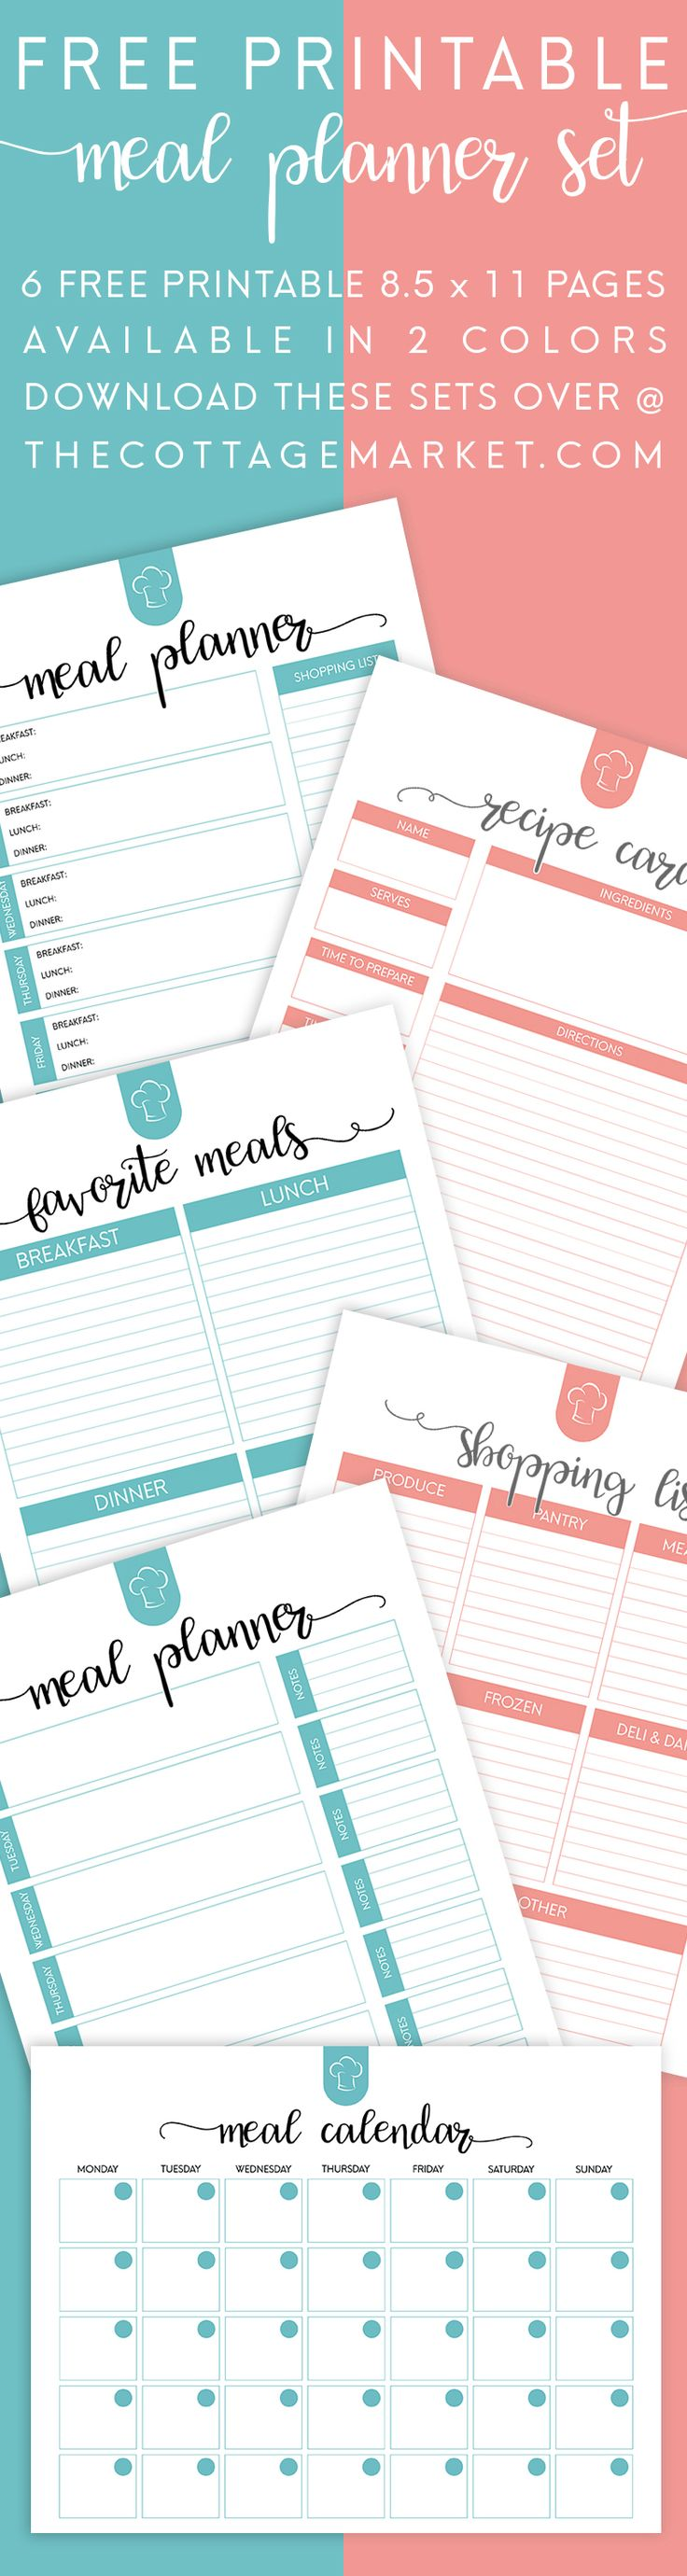 FREE Printable Meal Planner Set! 6 Free Printables Available in 2 Colors...Get those Meal Plans Organized for the New Year! Everything you need is right here and it's FREE!